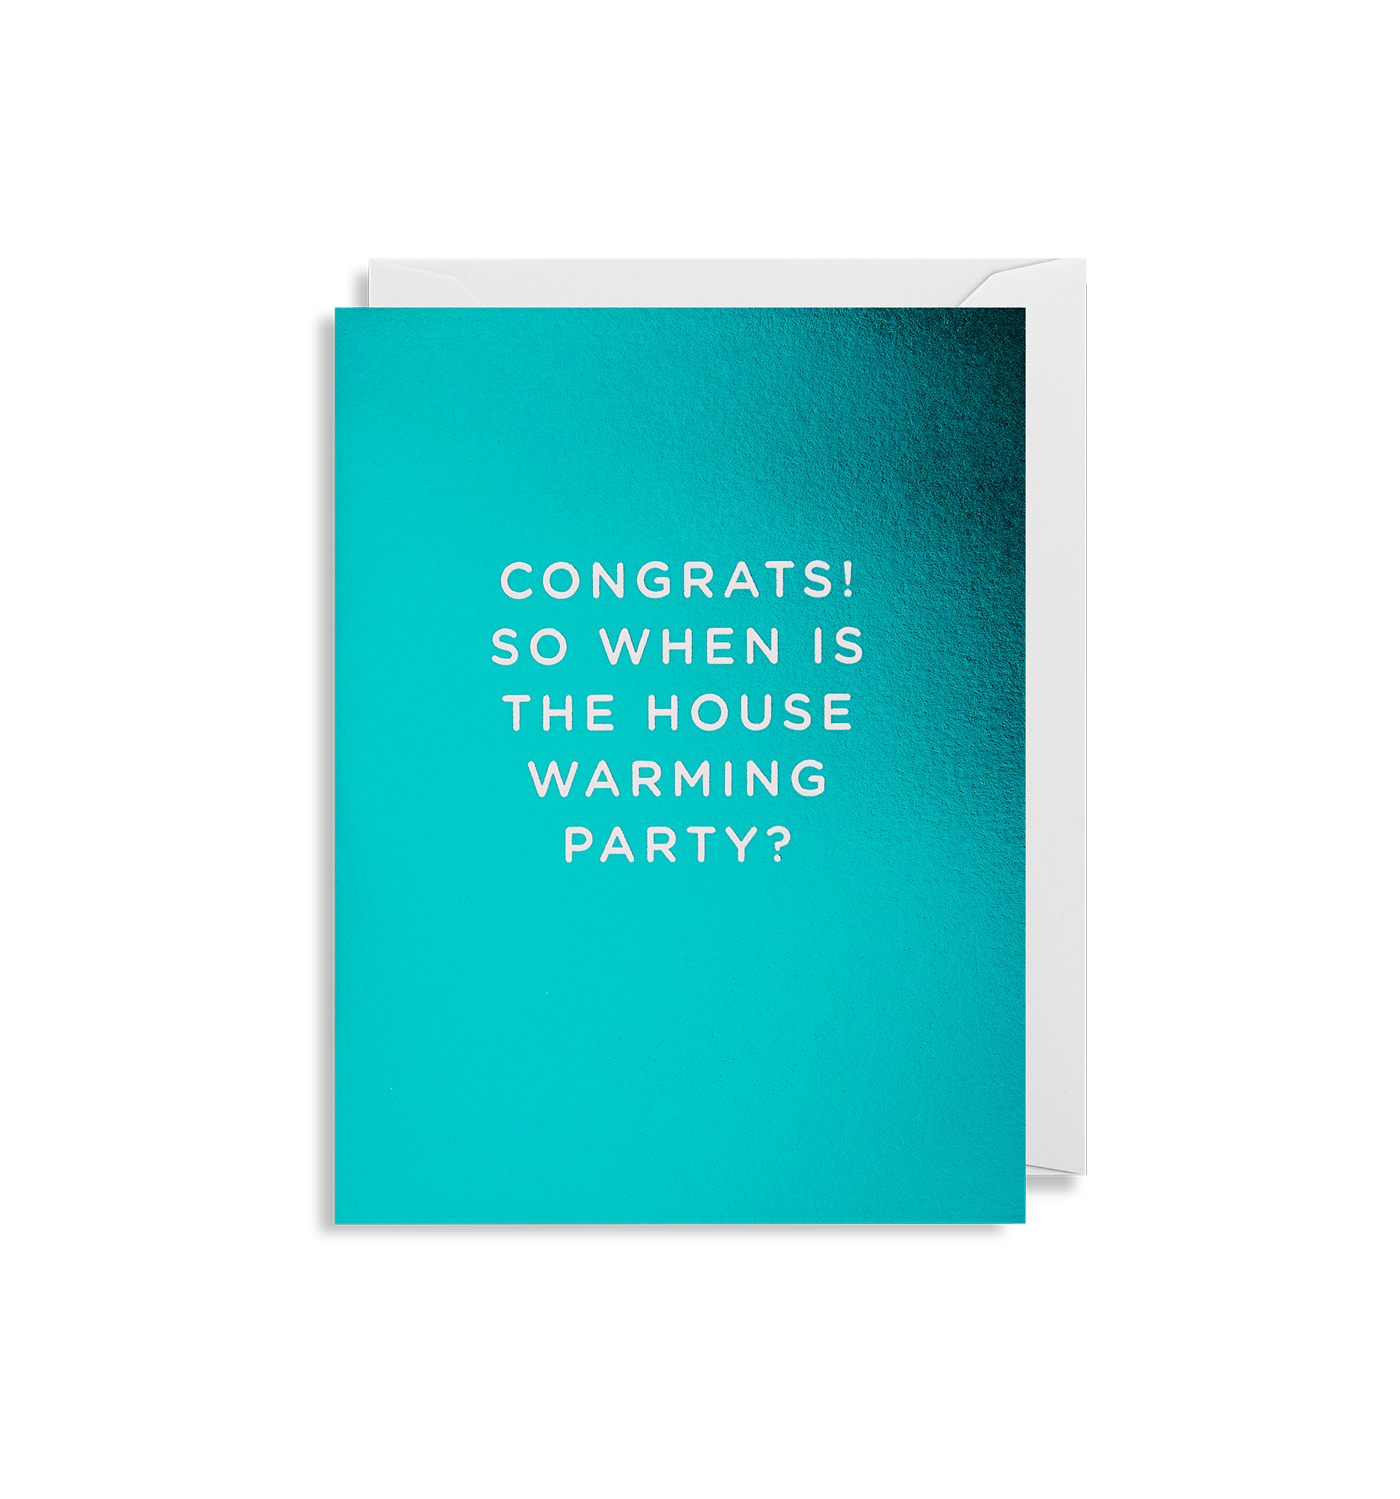 Congrats! So when is the house warming party?